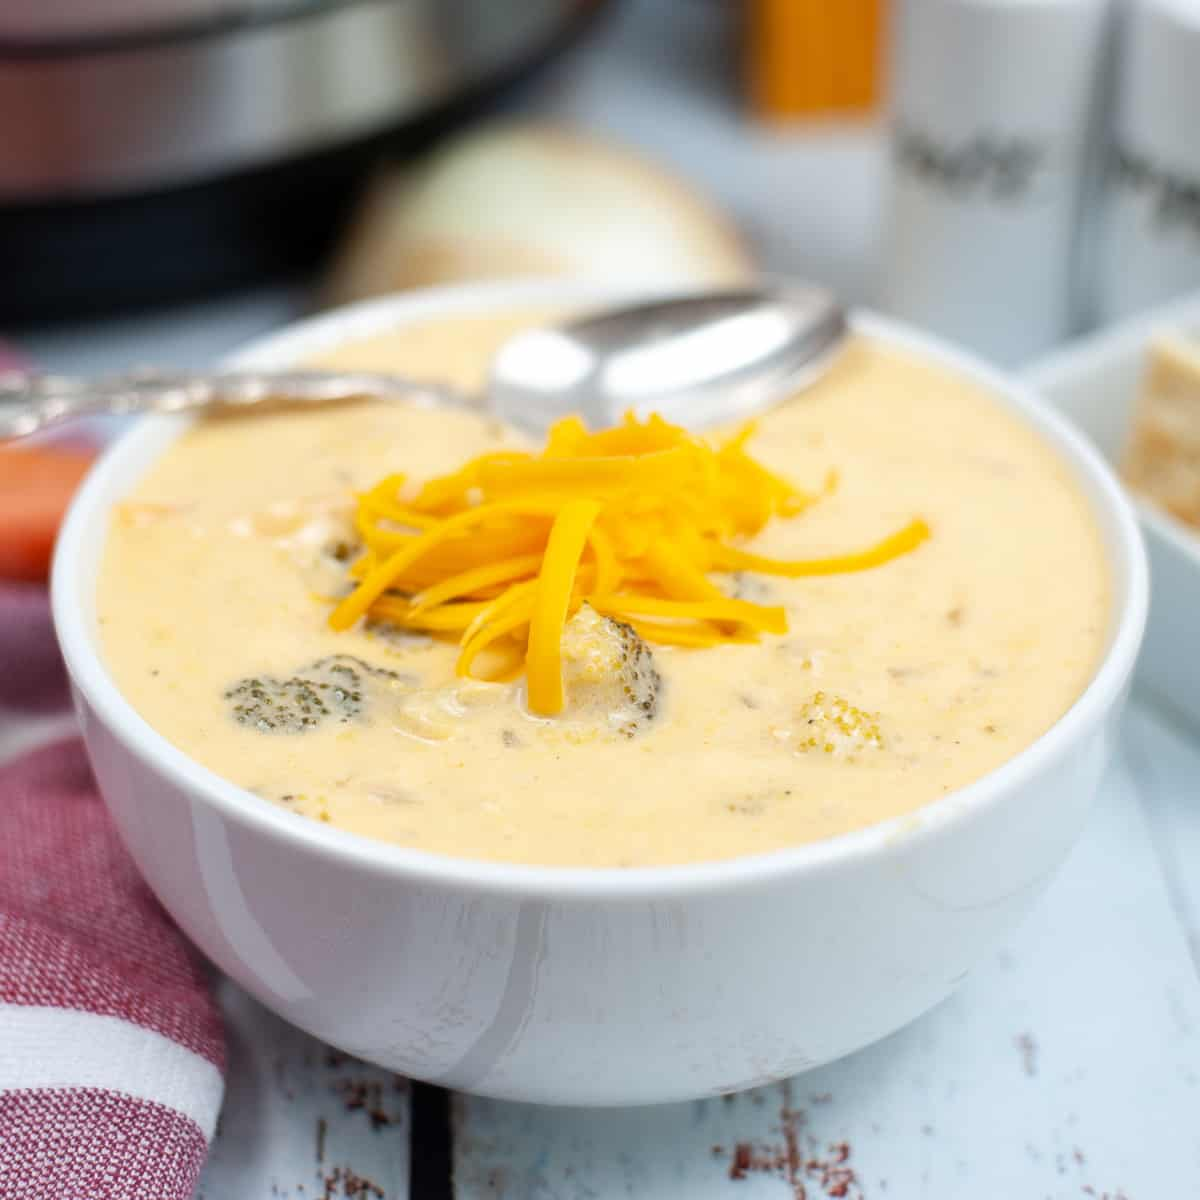 closeup of a bowl of Instant Pot broccoli cheddar soup garnished with some shredded cheddar cheese